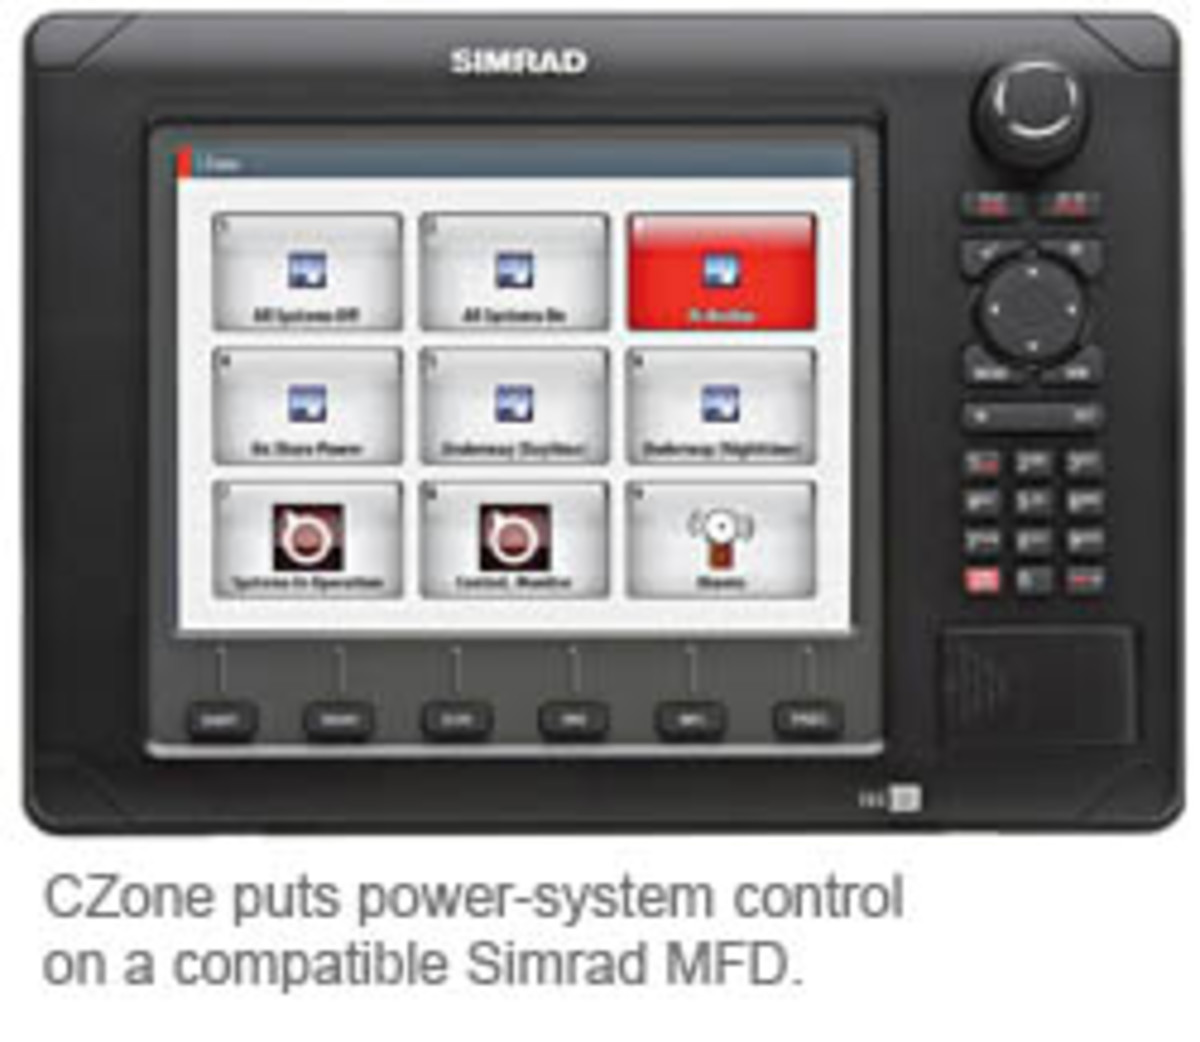 CZone puts power-system control on a compatible Simrad MFD.